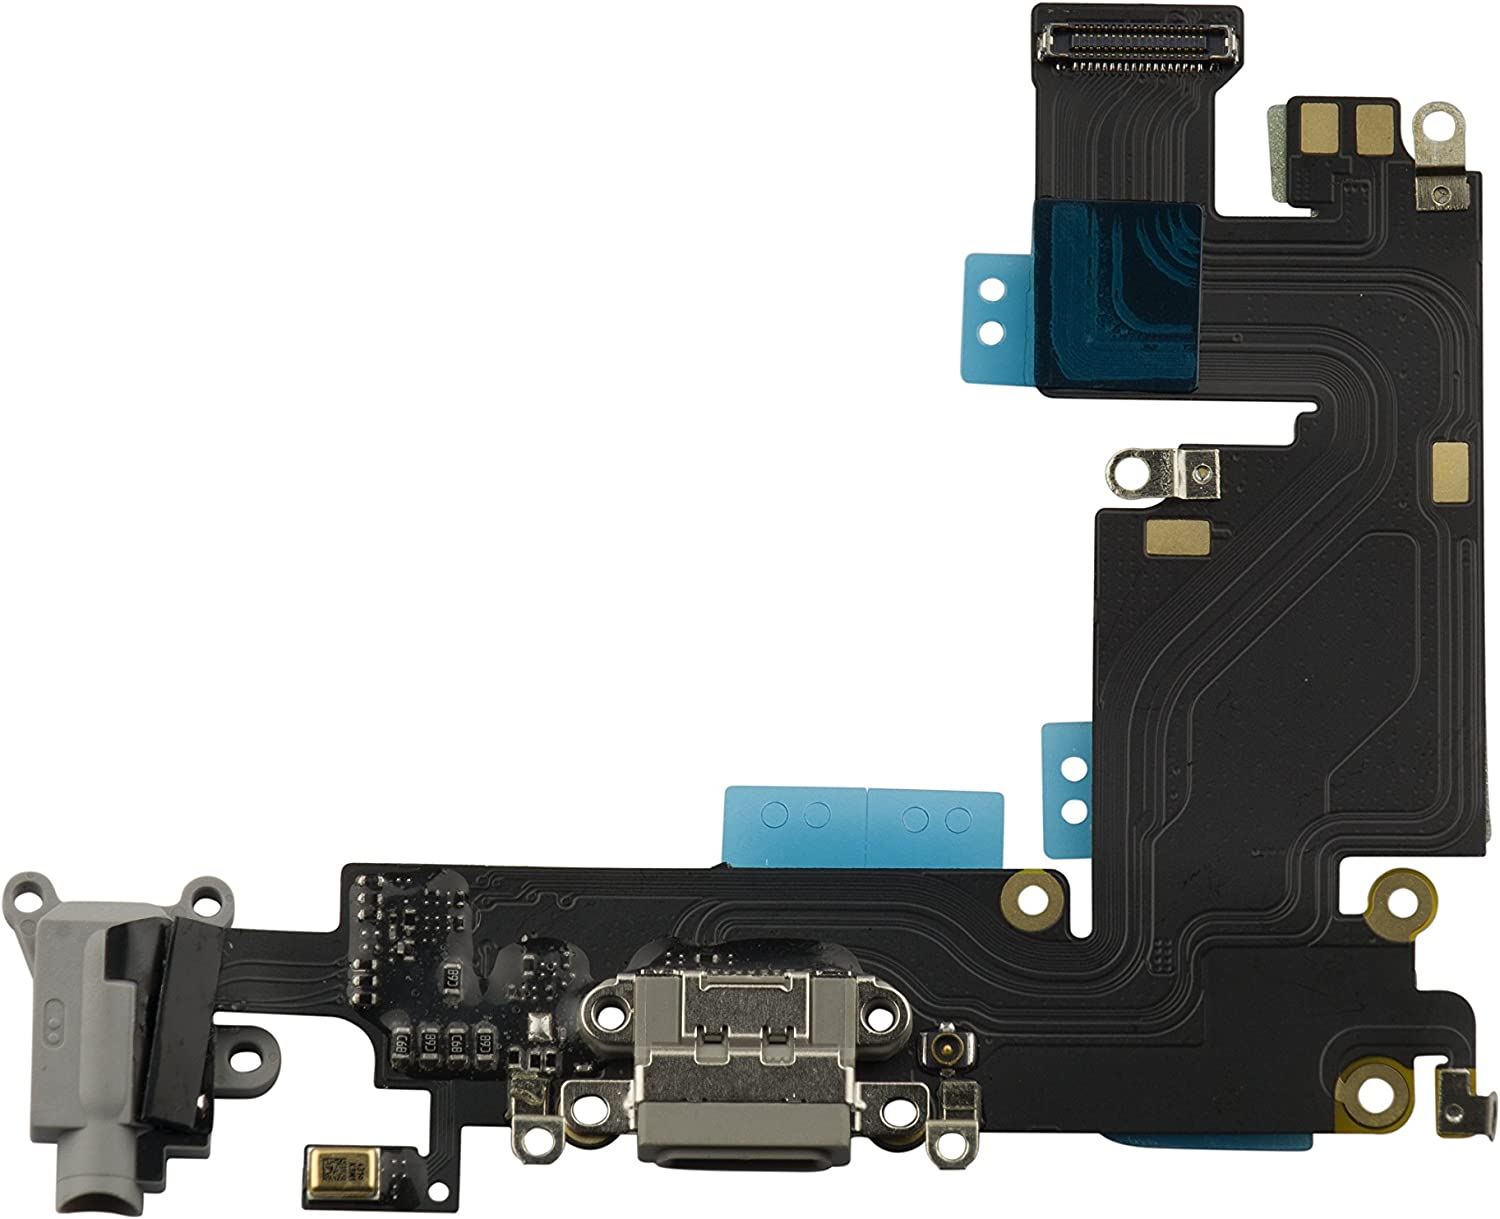 HKCB Charging Port Dock Connector Headphone Jack Flex Cable Microphone Replacement for iPhone 6 Plus 5.5